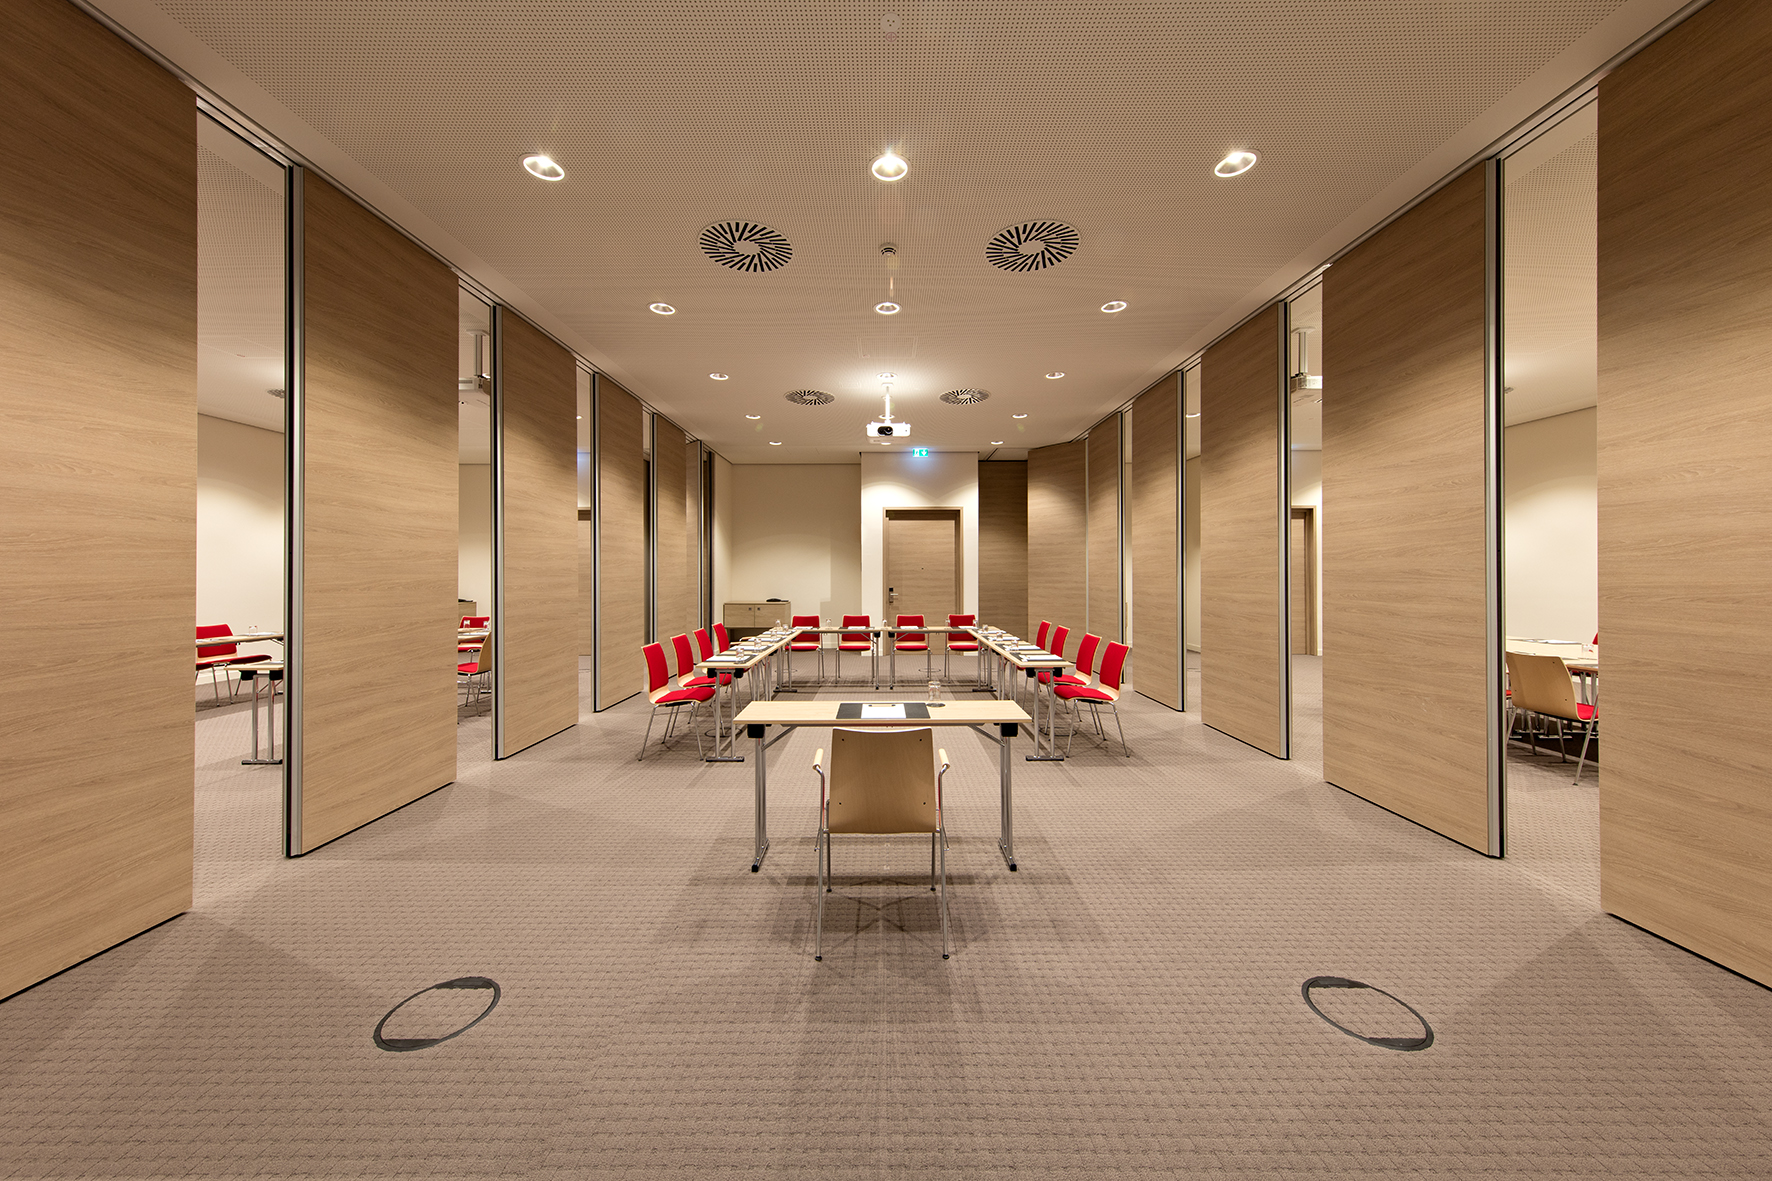 The conference area can easily be divided into several independent soundproofed rooms using the Slido Wall partition wall systems.